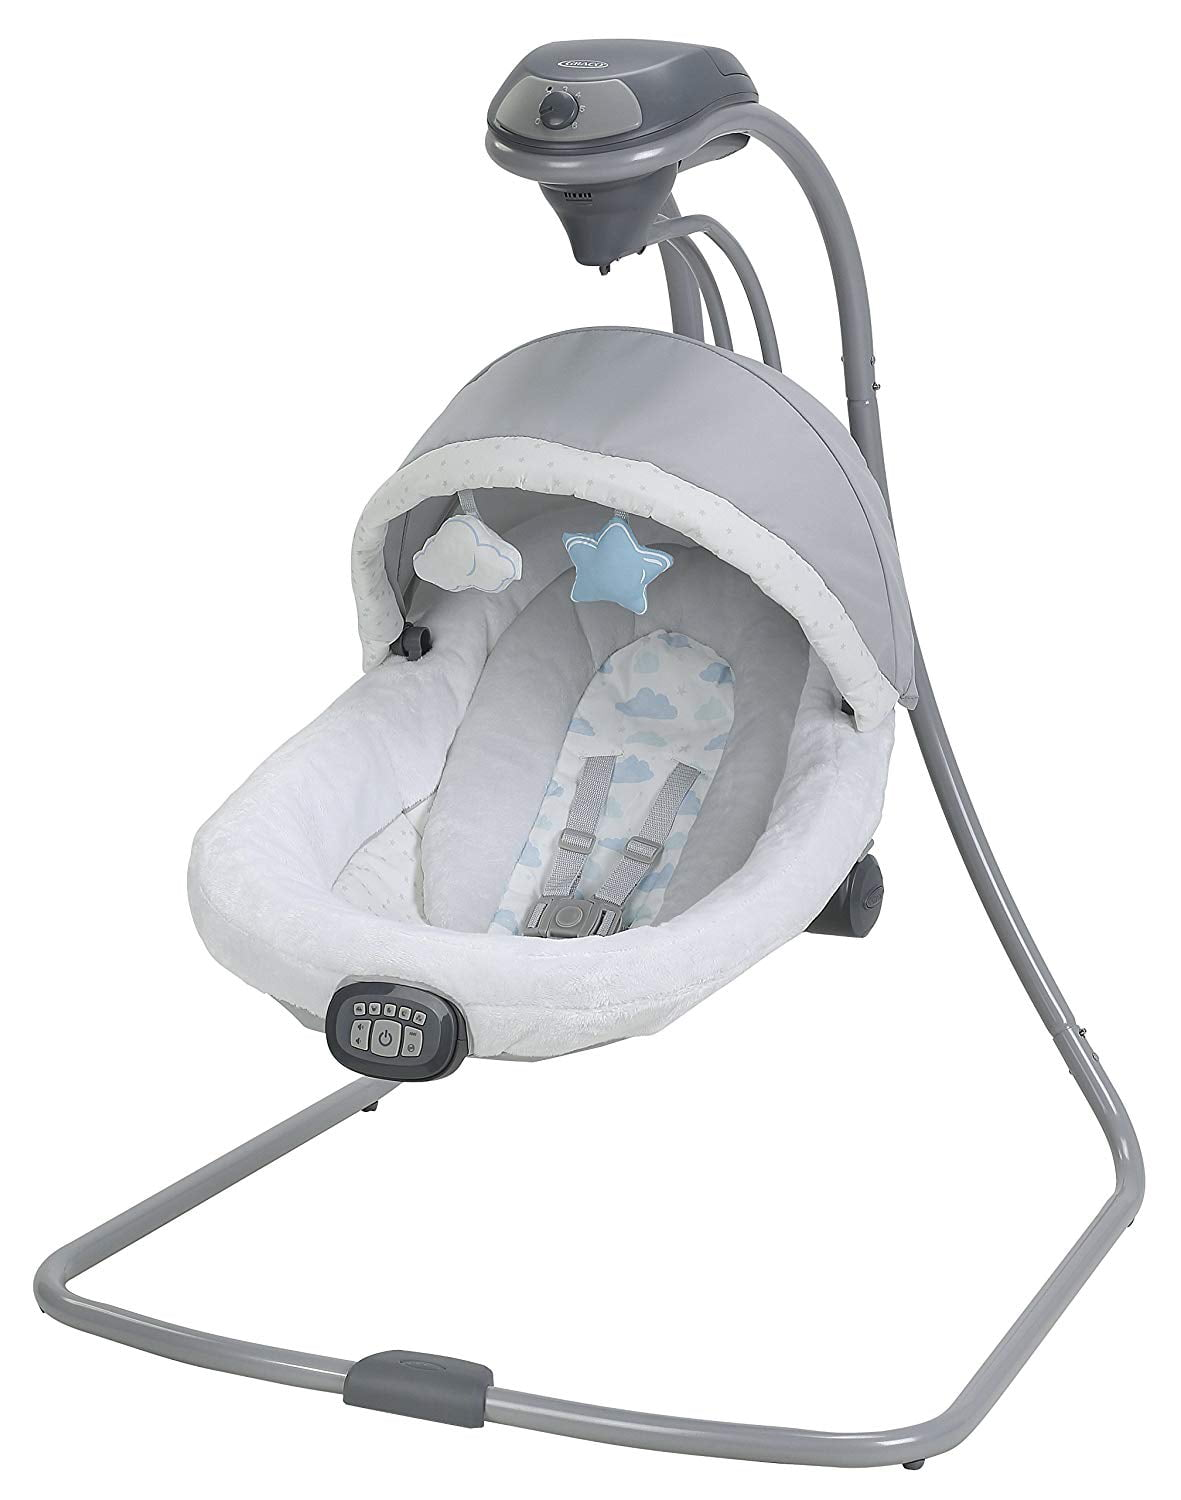 Graco Baby Oasis Swing with Soothe Surround Technology in Azure by Graco